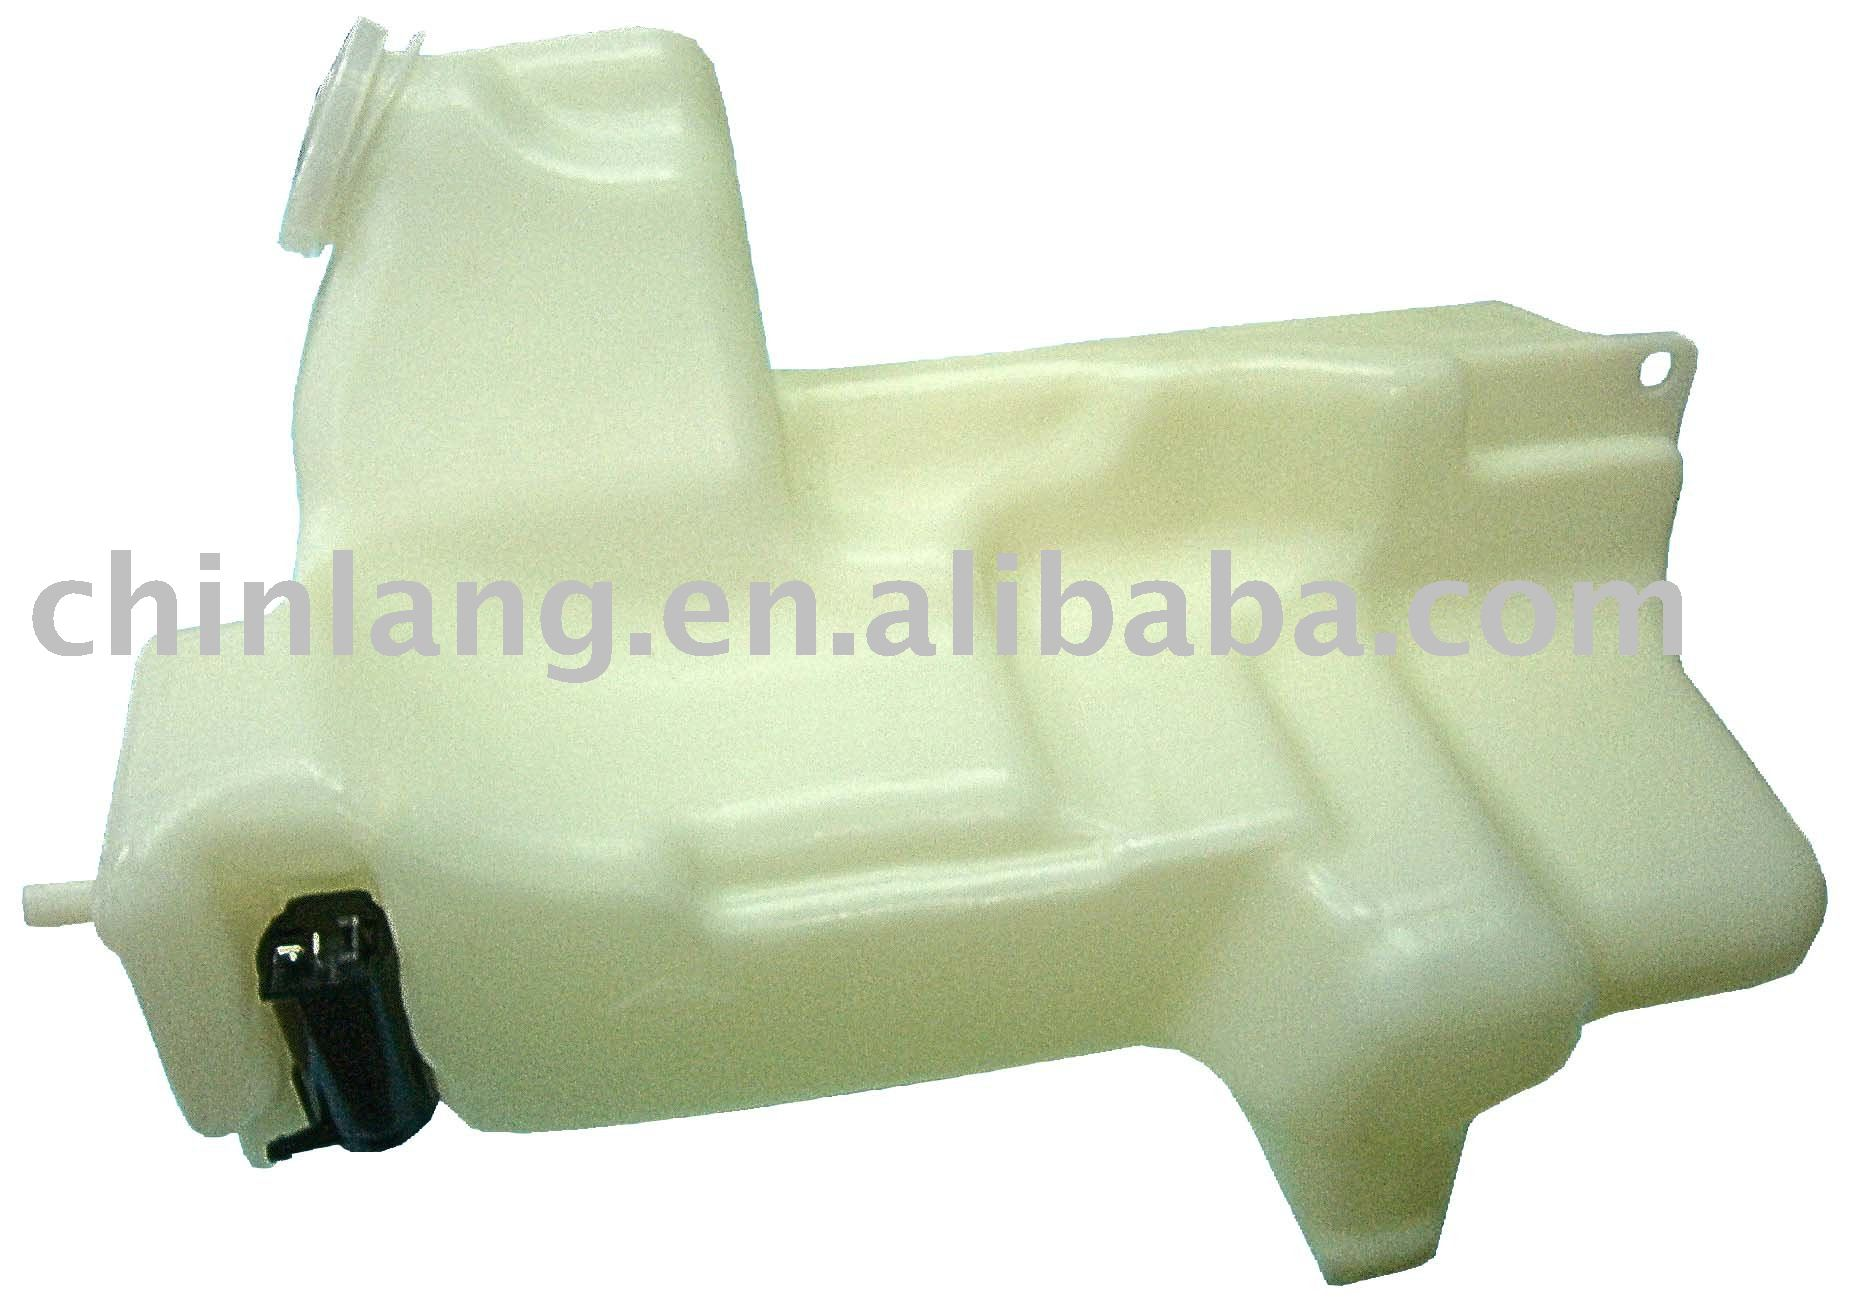 Windshield Washer/ Washer Tank/ Washer Reservoir For TOYOTA DYNA 102 103 96' 24V